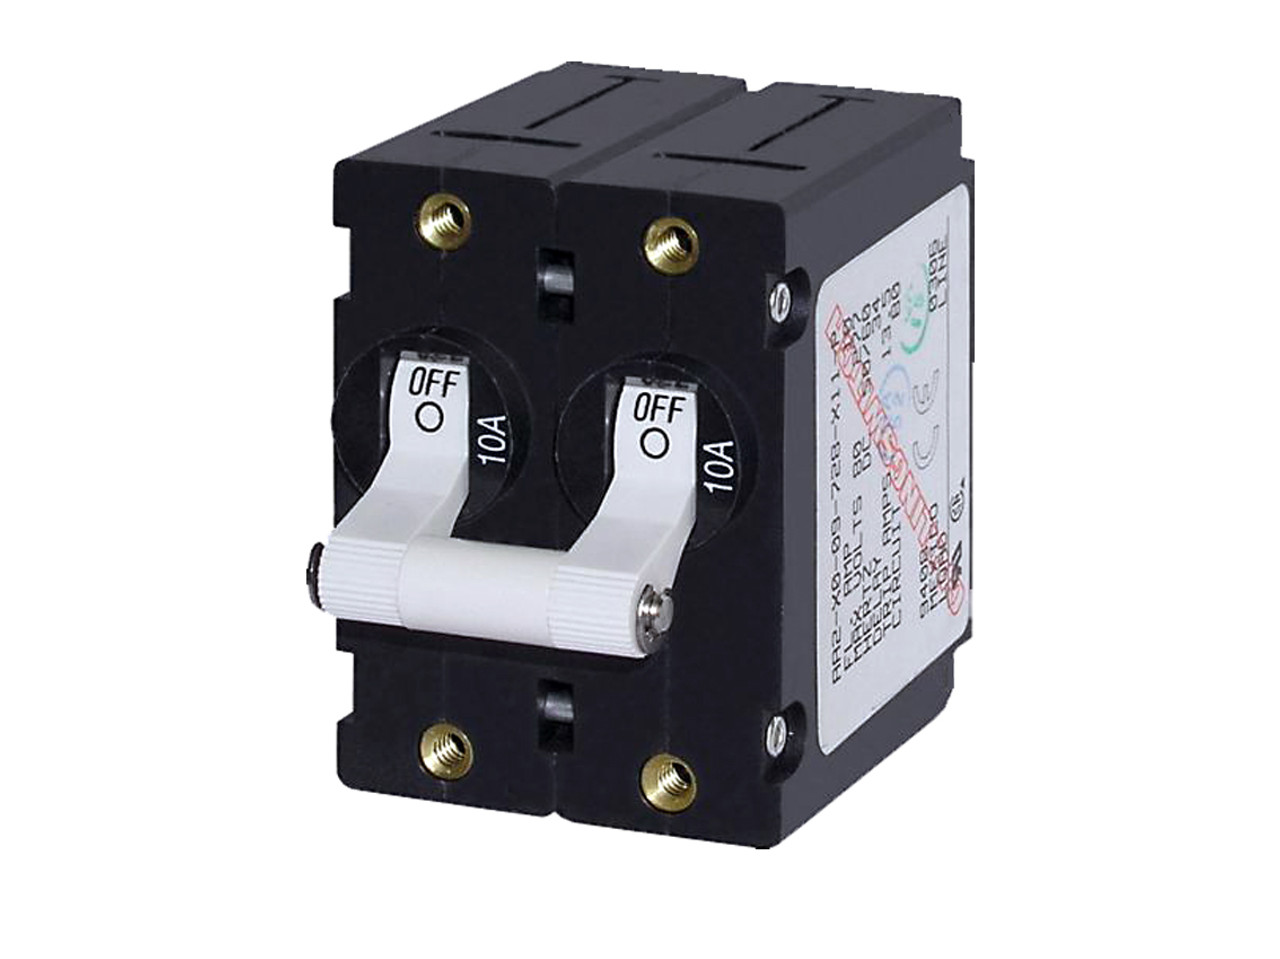 Circuit Breaker/Switch Double Pole 16A - Boat Electricals